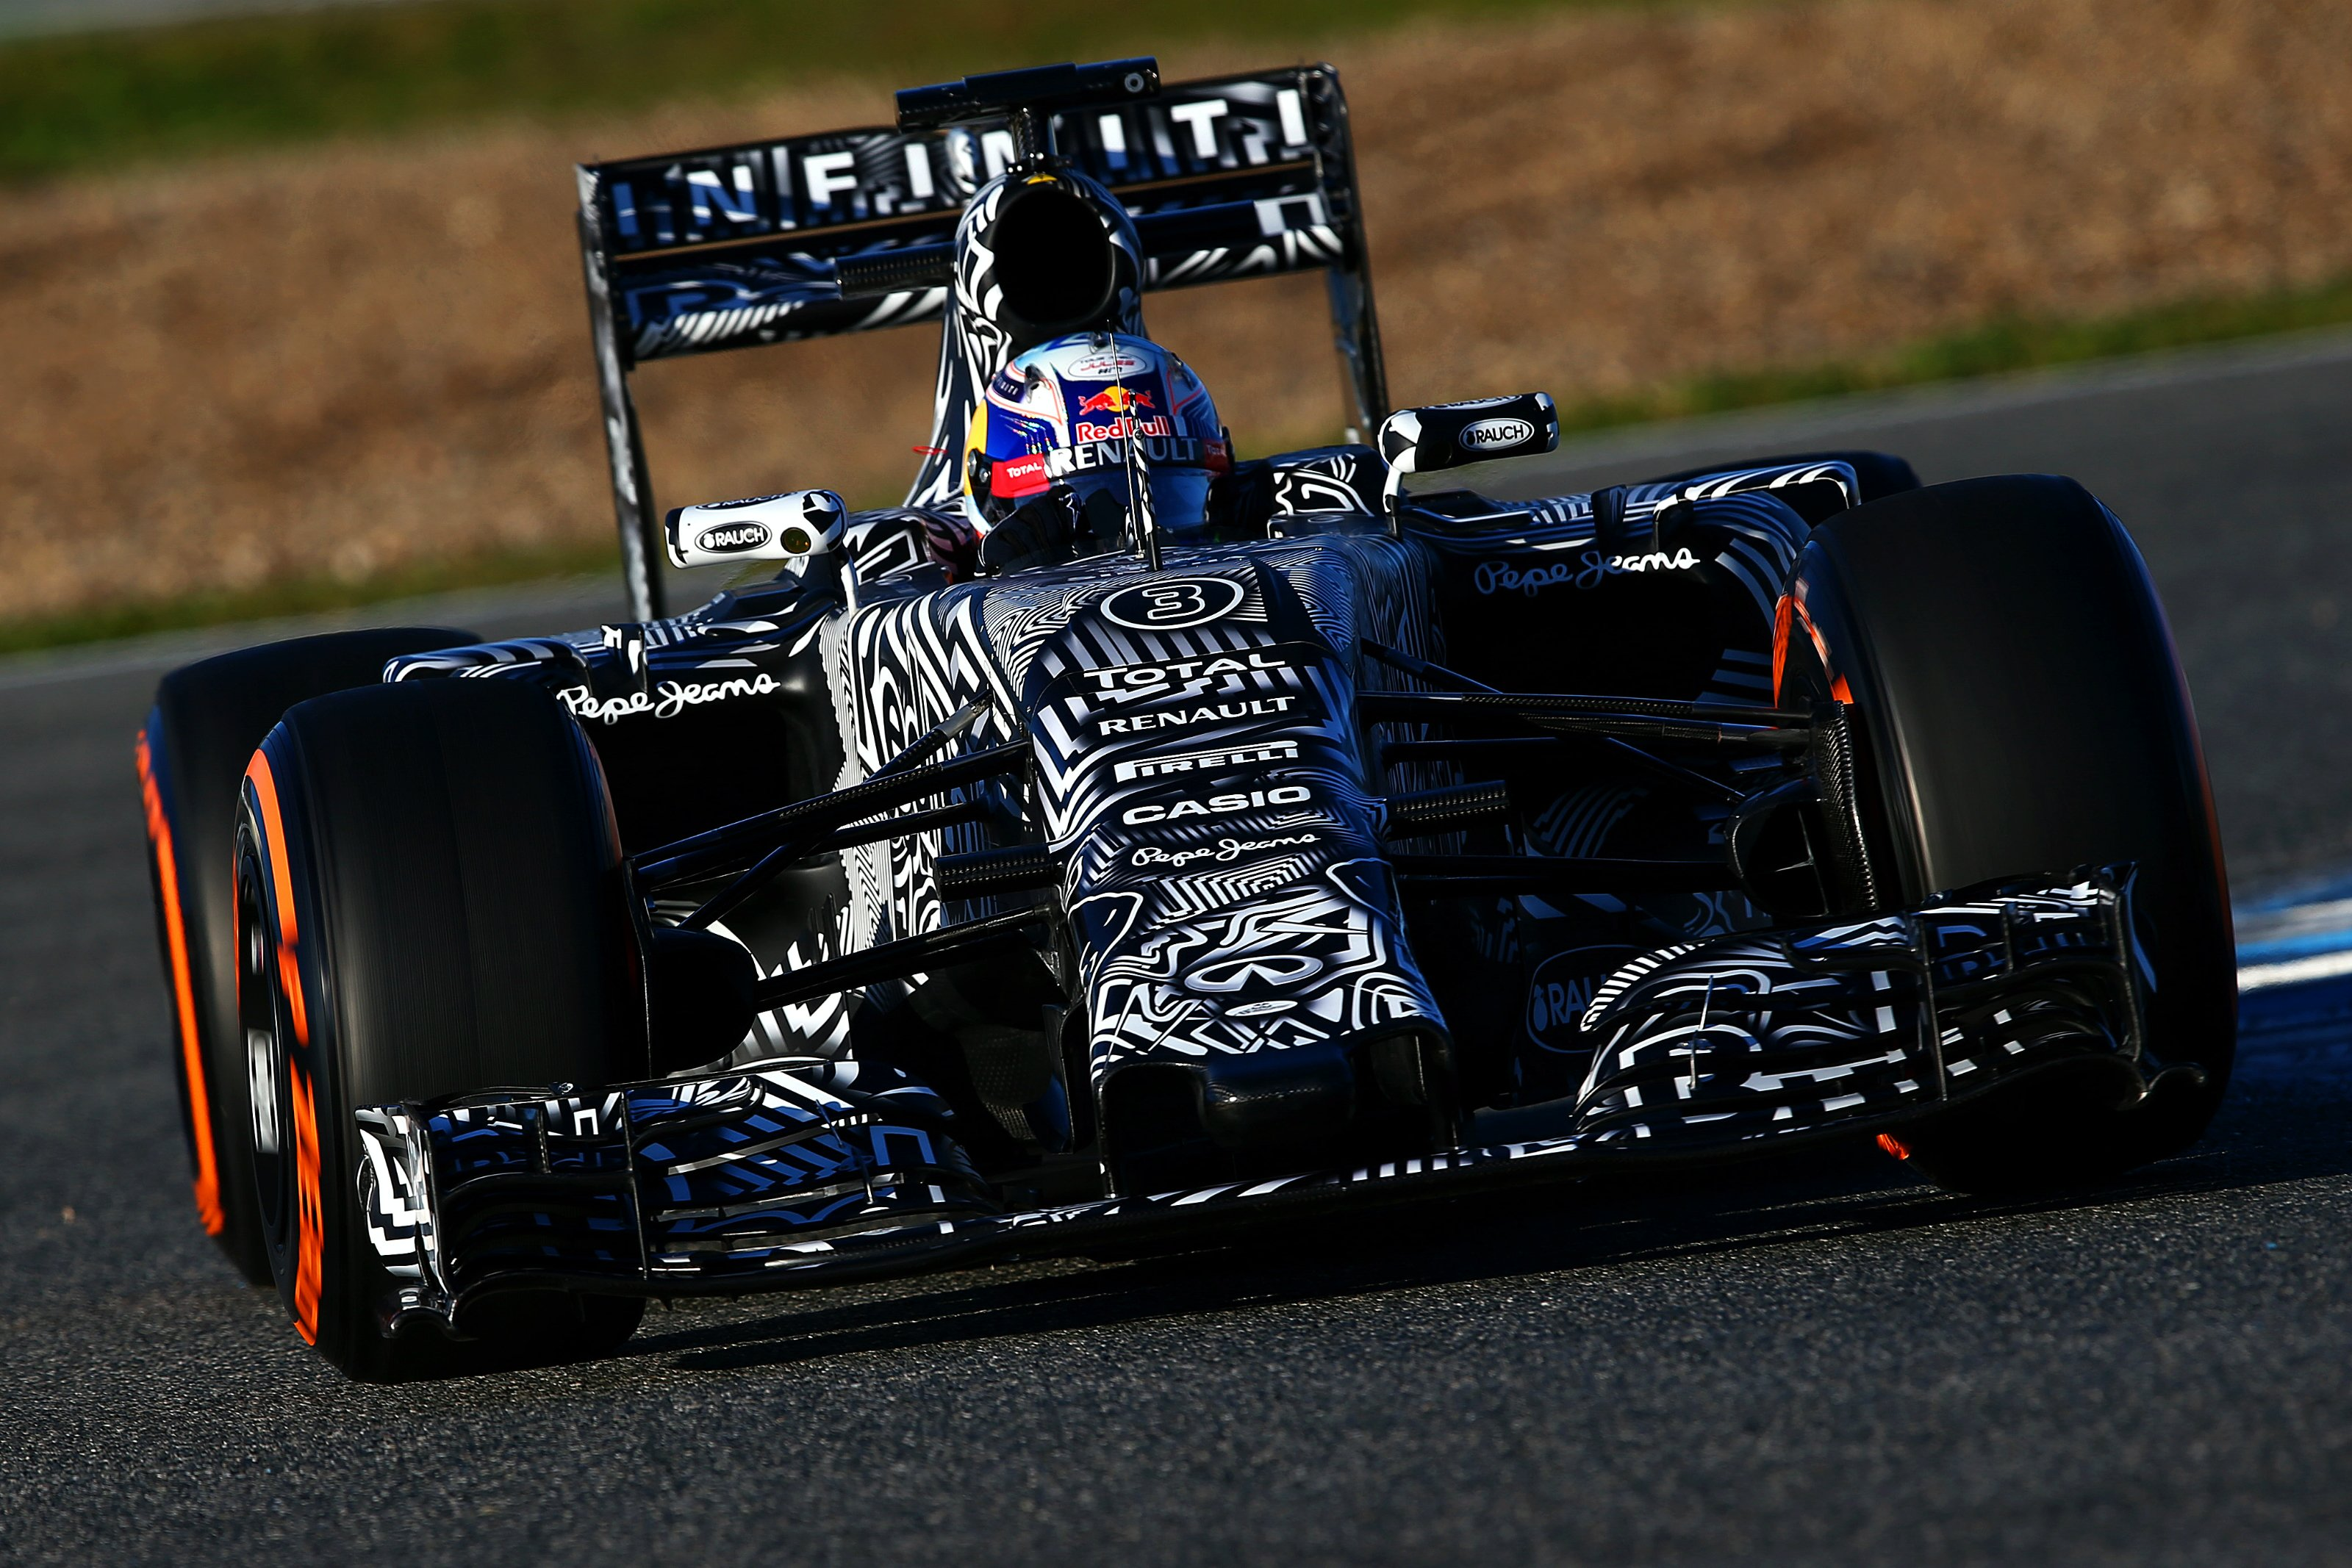 2015 f1 rb11 autoblog - photo #9